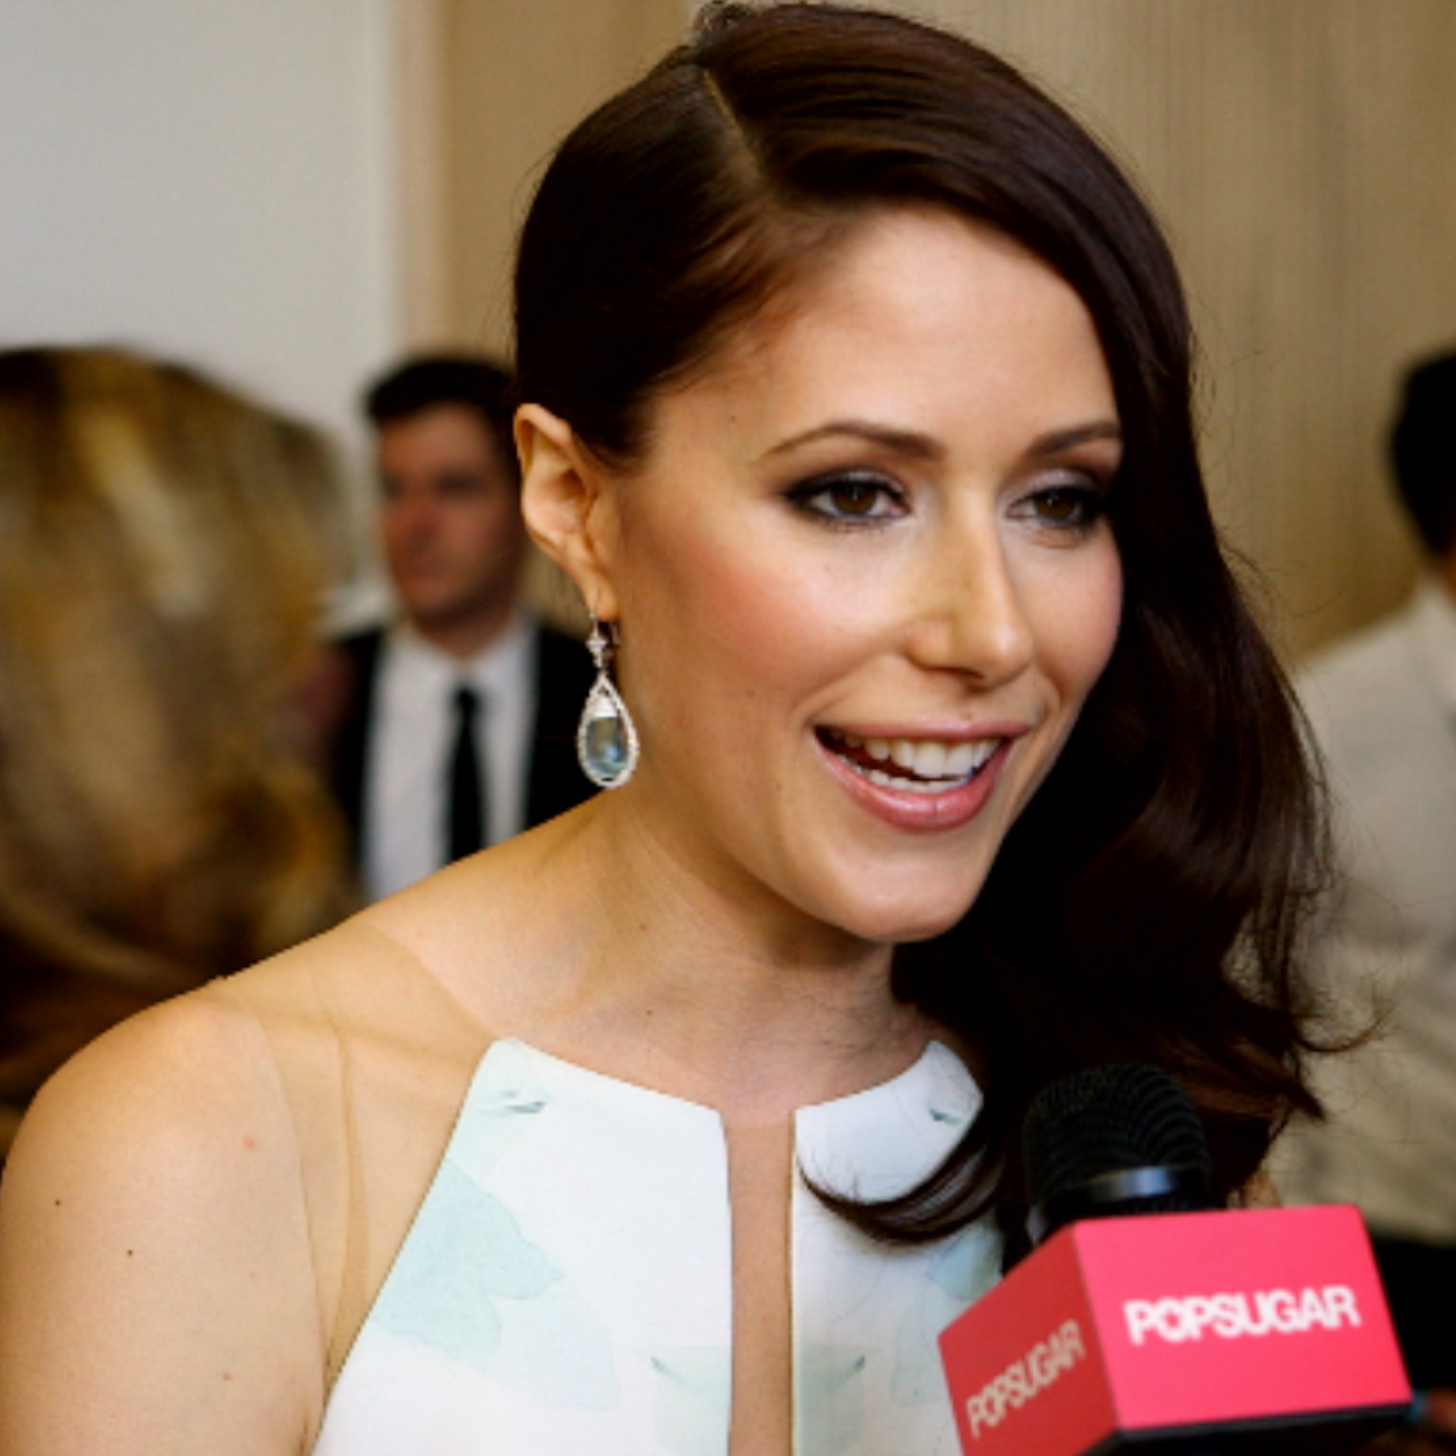 Who is Amanda Crew dating right now